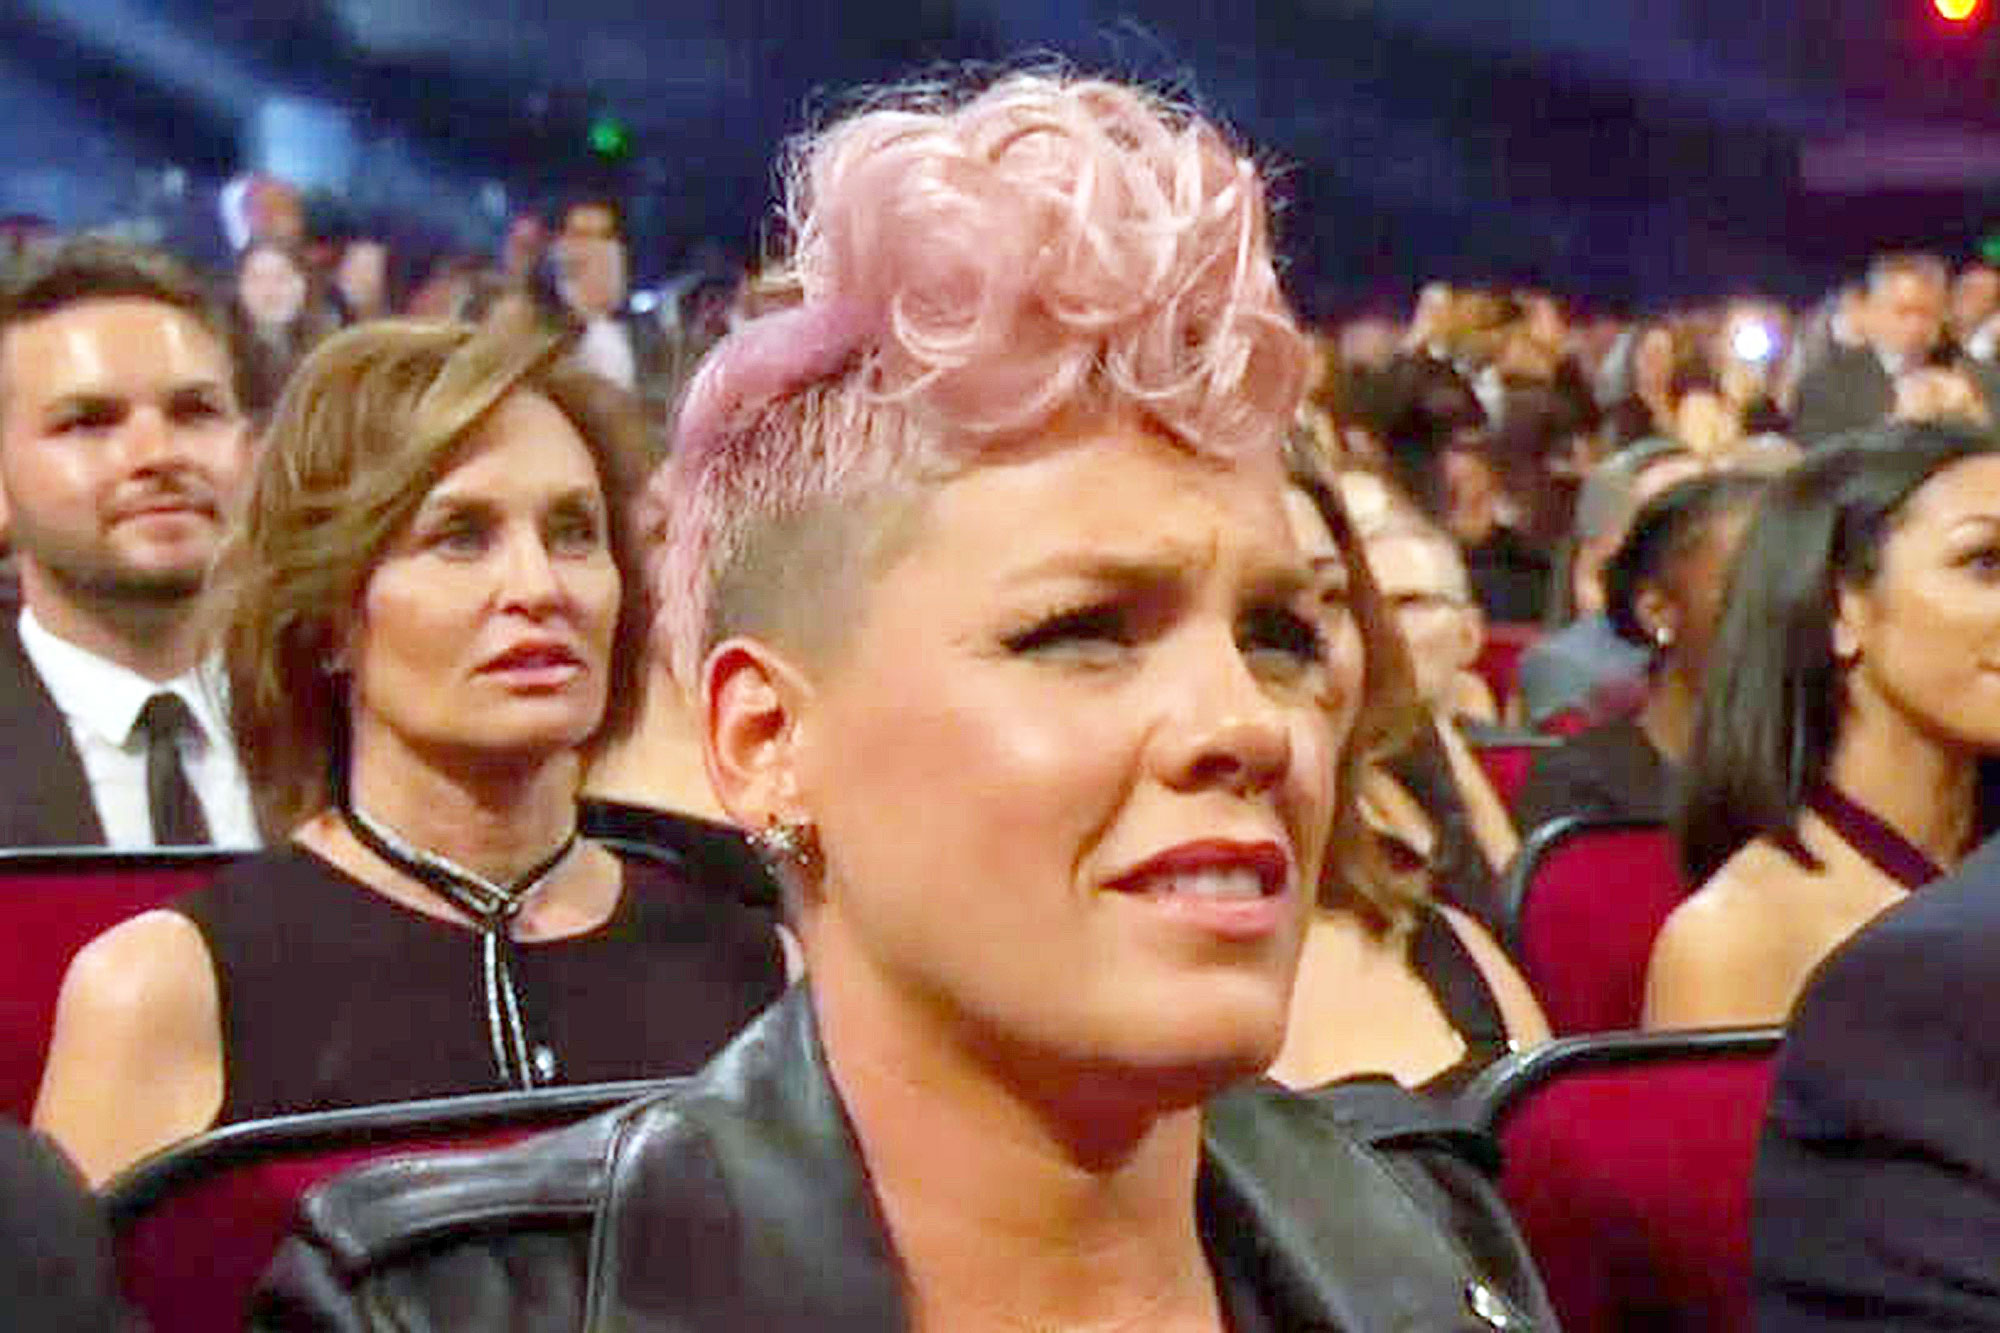 """Awards Shows Audience Reactions Pink AMAs 2017 - While the """"So What"""" singer looked like she was in pain during Christina Aguilera's Whitney Houston tribute at the 2017 AMAs, she denied not enjoying the performance on Twitter after the show. """"Christina f—king killed it tonight for one of our favorite singers ever,"""" Pink tweeted."""